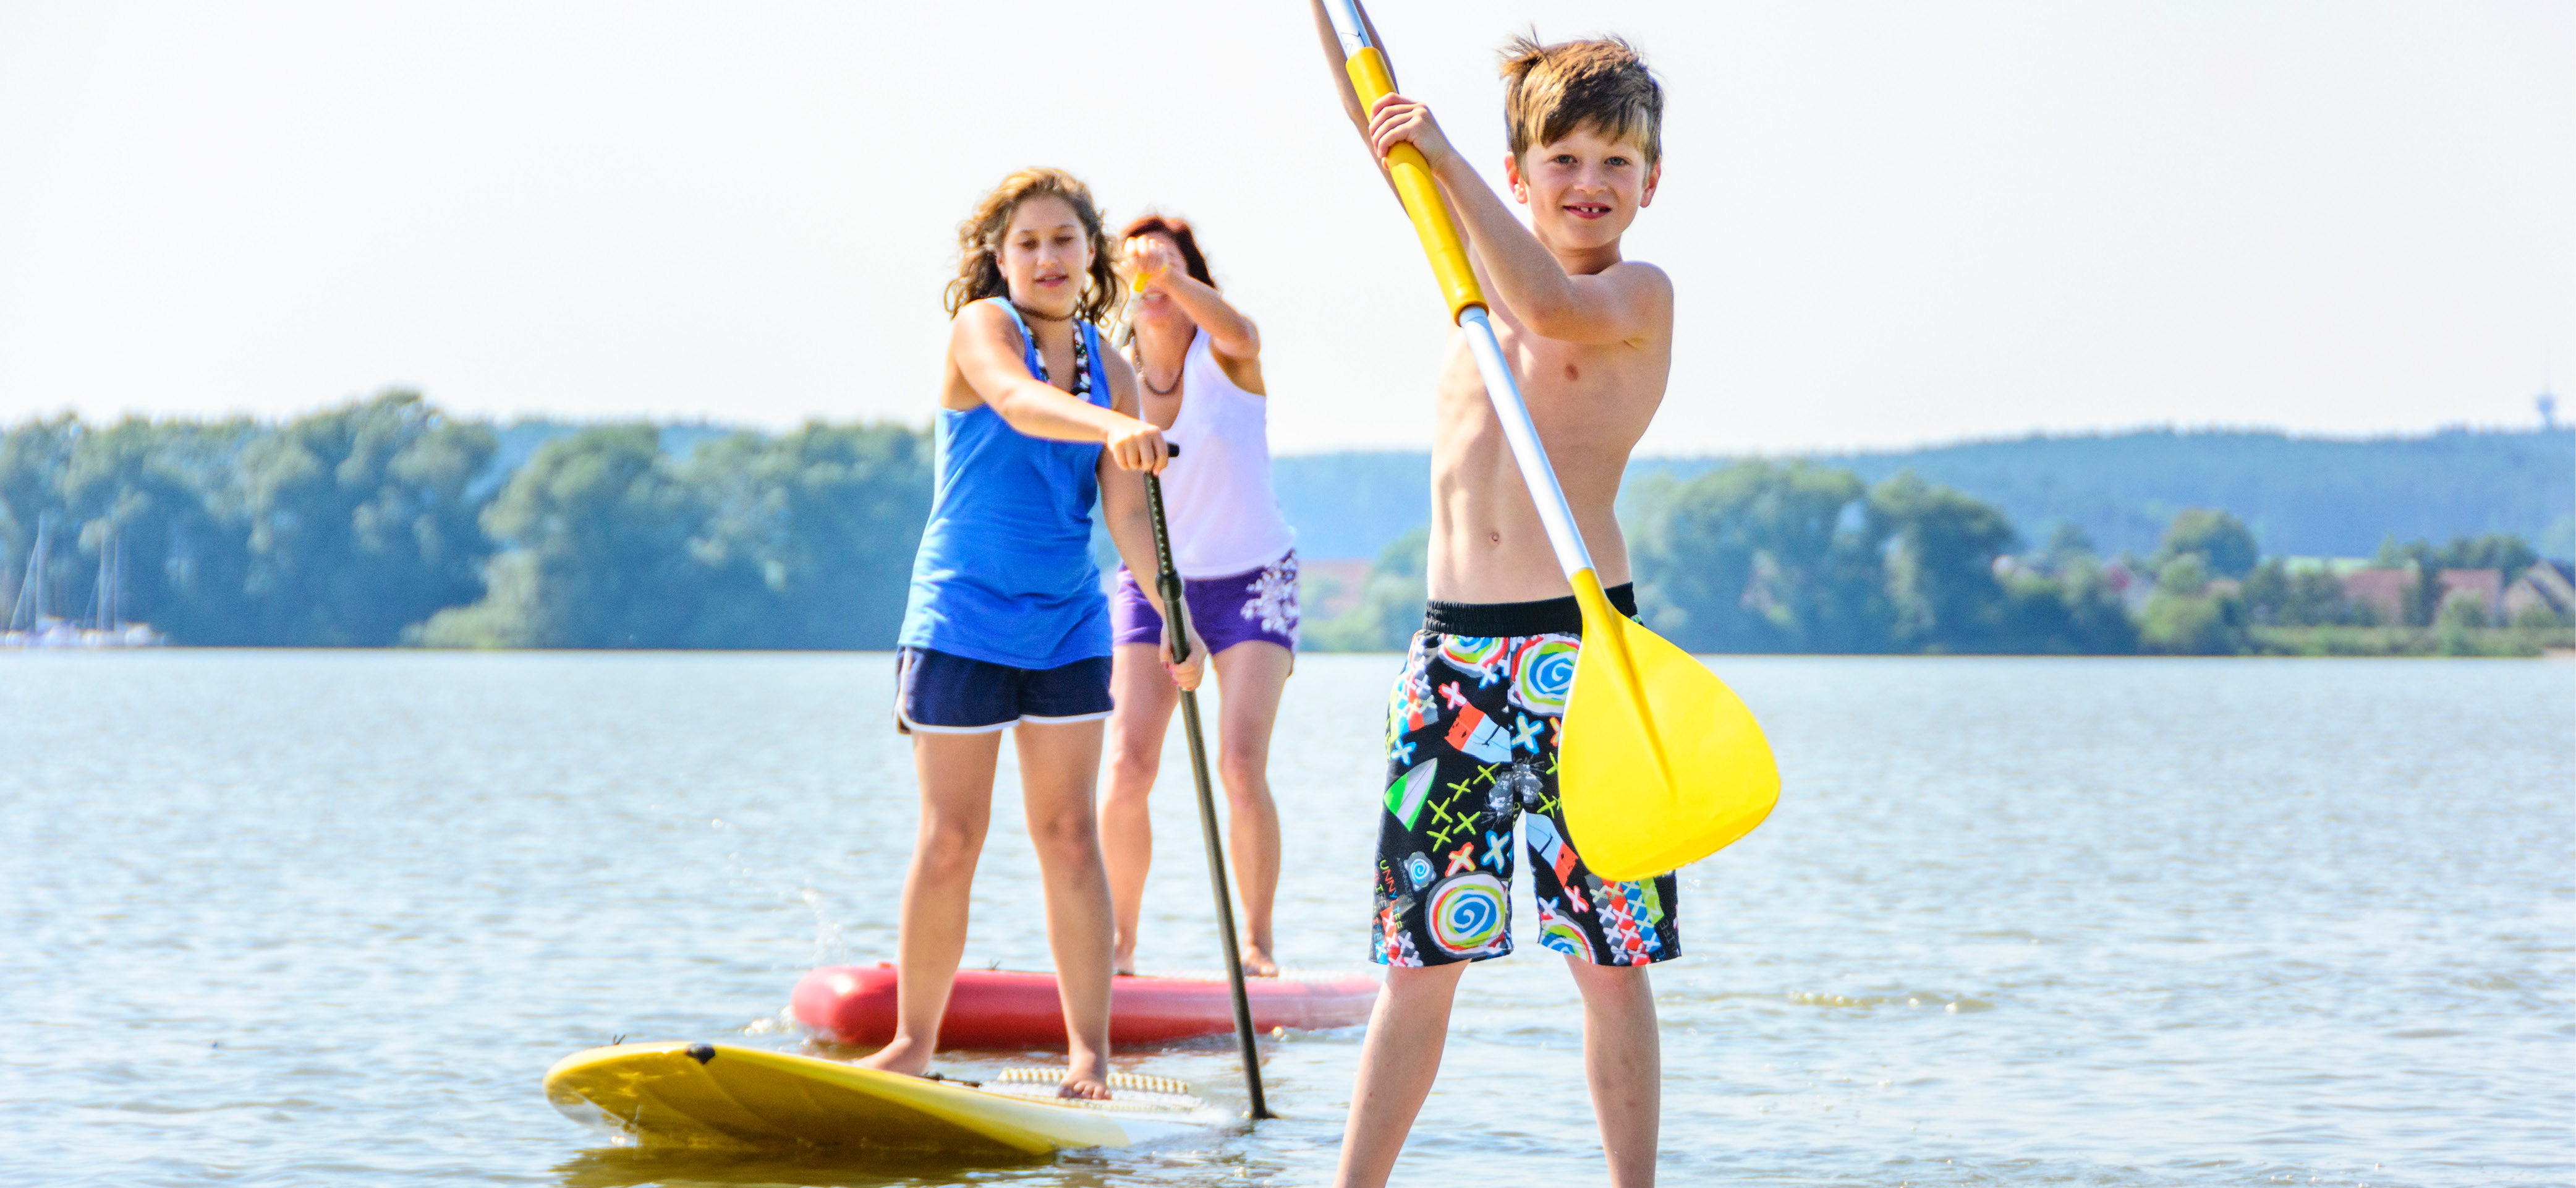 UKSH_Gutestun_SUP4Kids_2018_H1